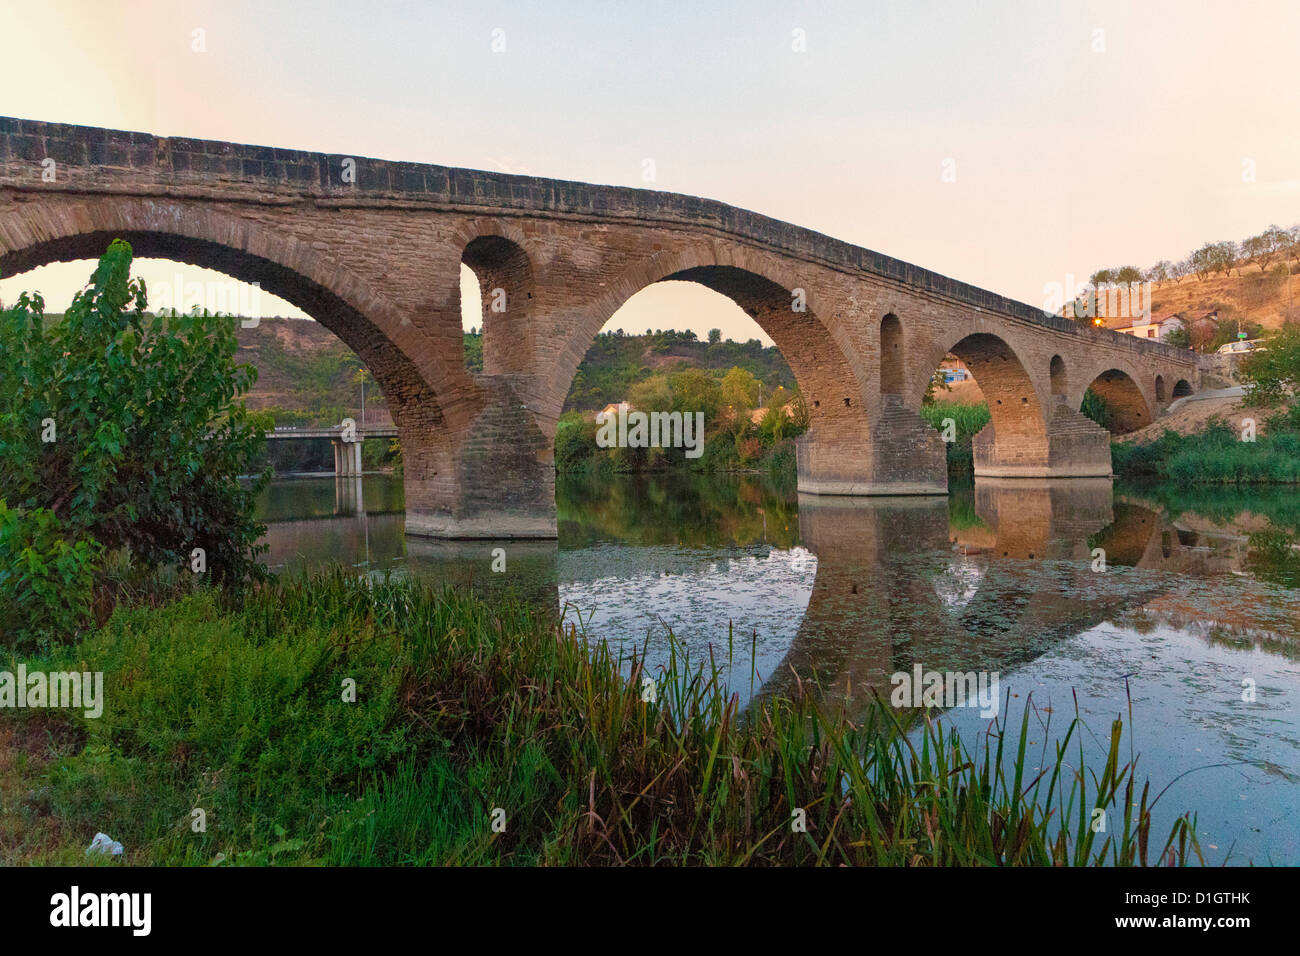 Puente la Reina, a medieval bridge lies between Pamplona and Estella on the Way of St. James pilgrimage route to - Stock Image